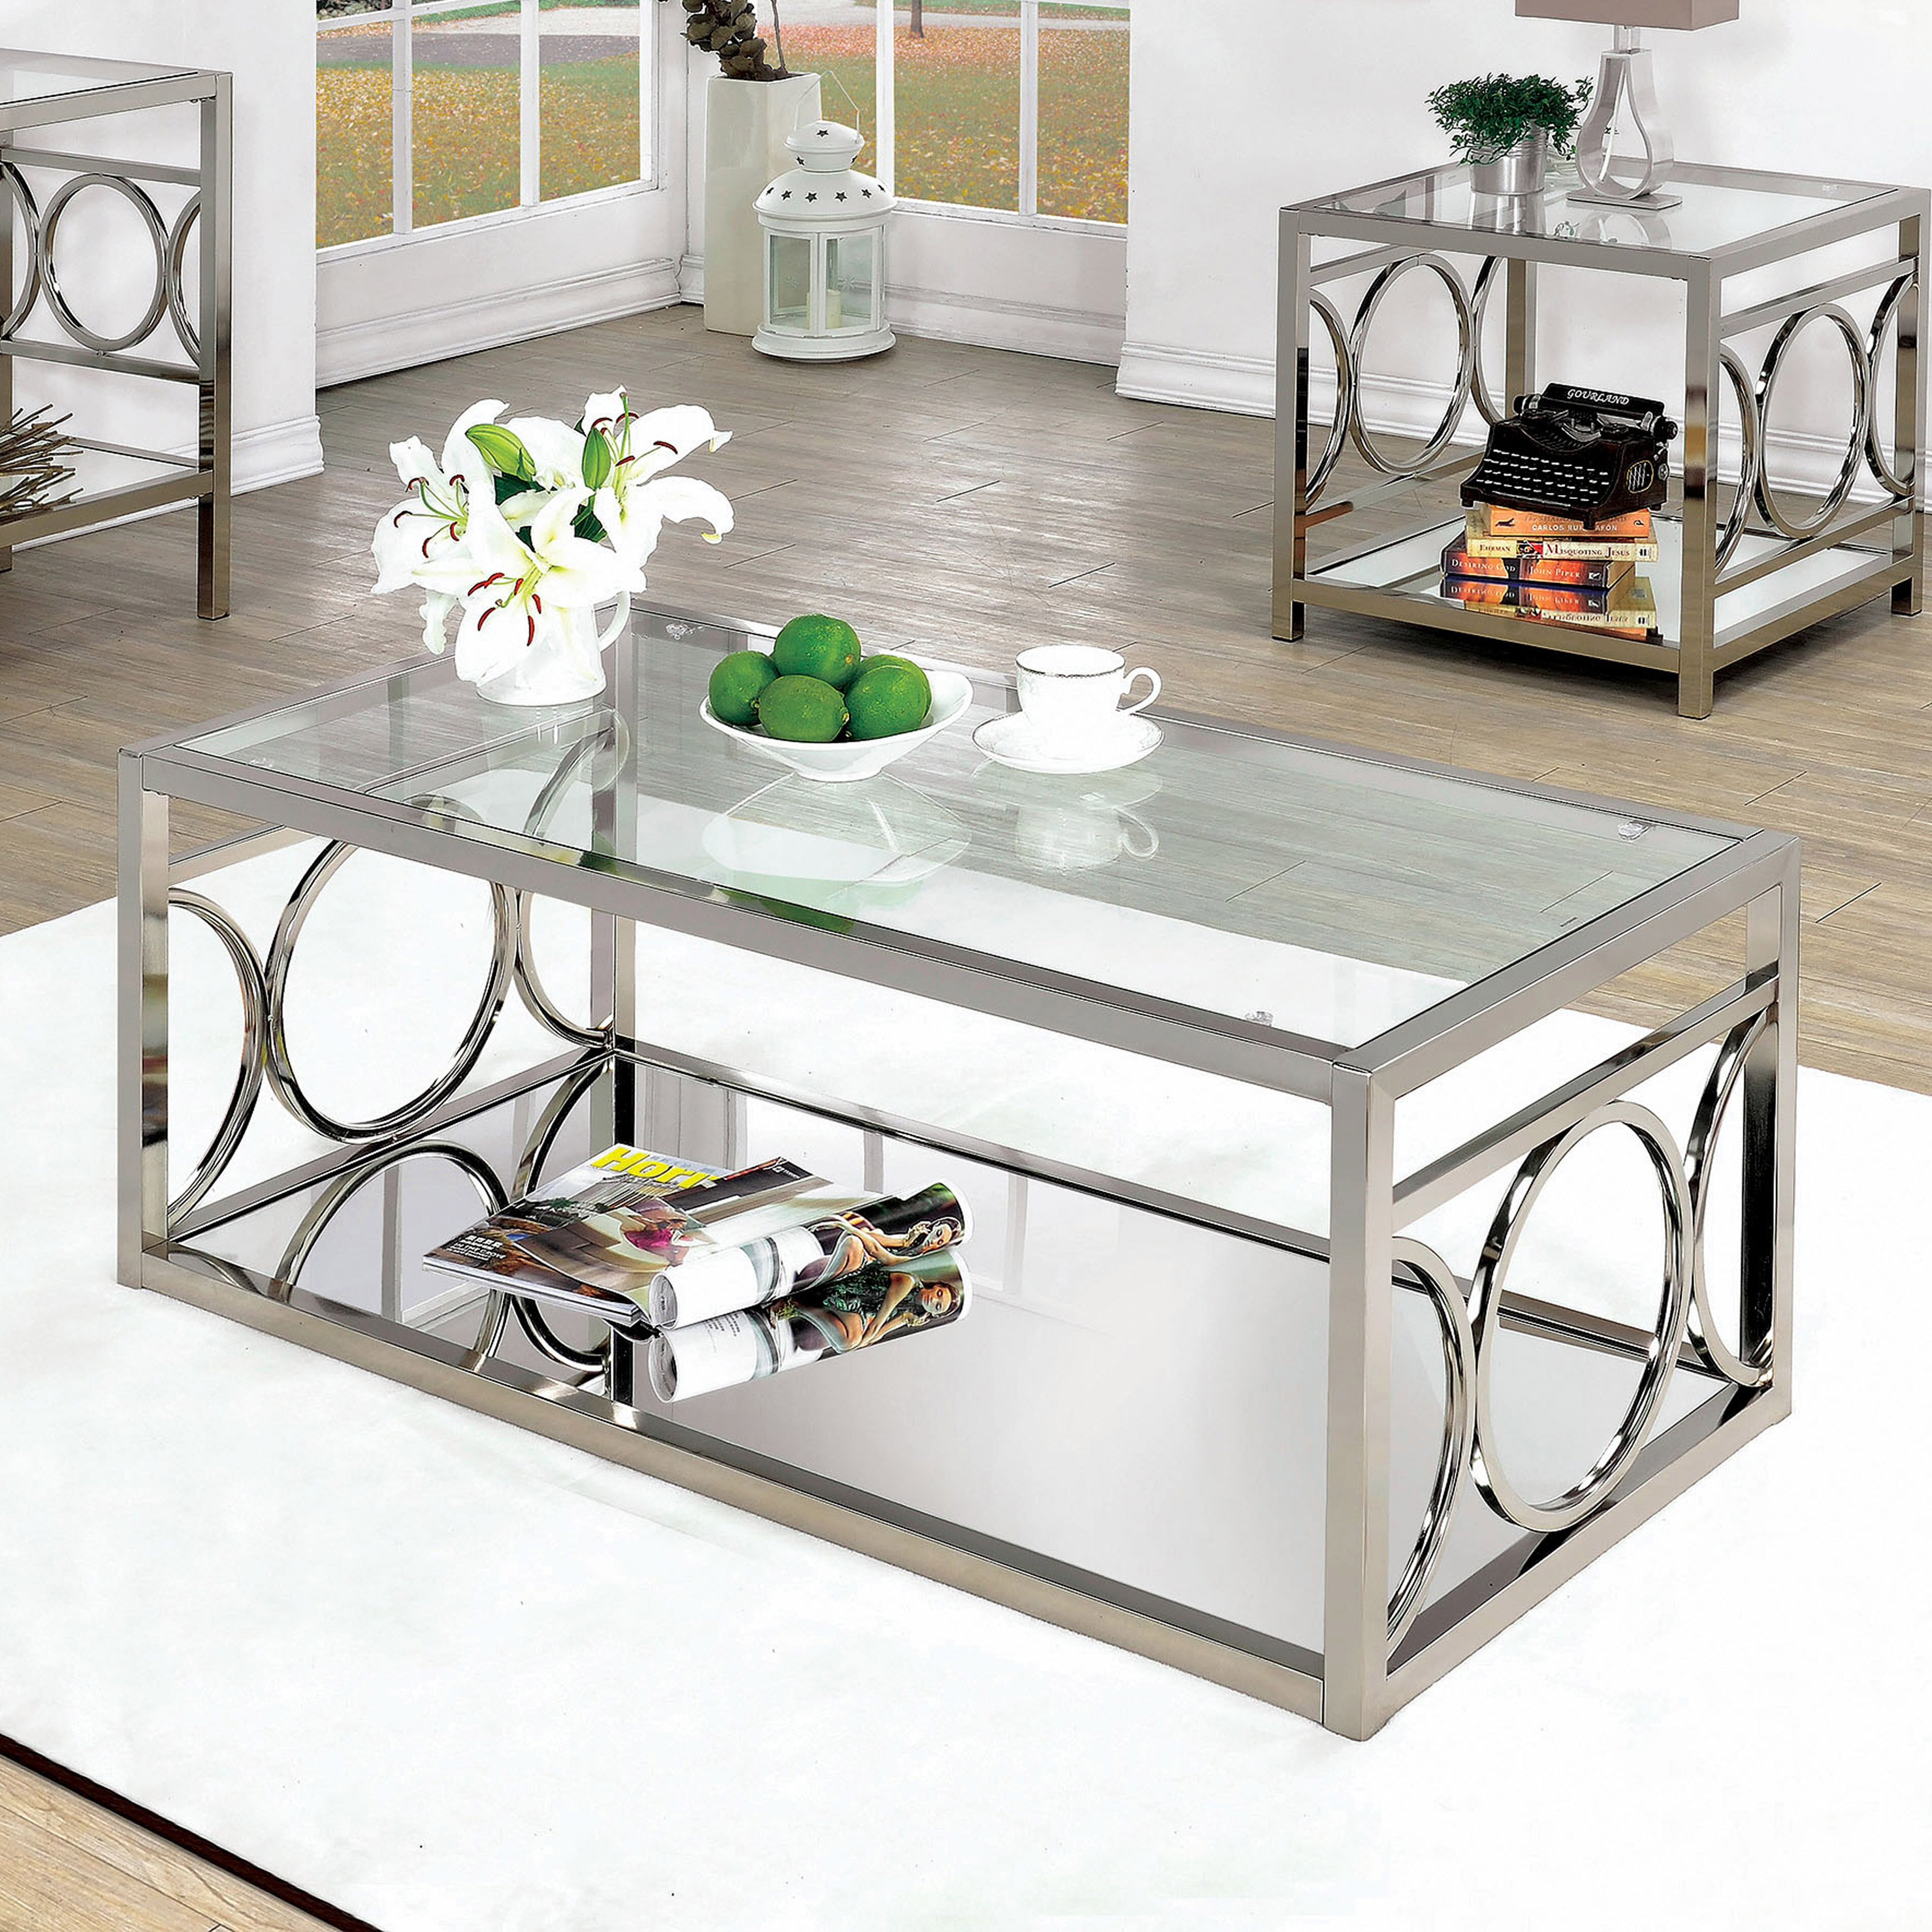 Romy Square Metal Coffee Table Am Pm: Mercer41 Spacek O-Ring Panel Coffee Table & Reviews